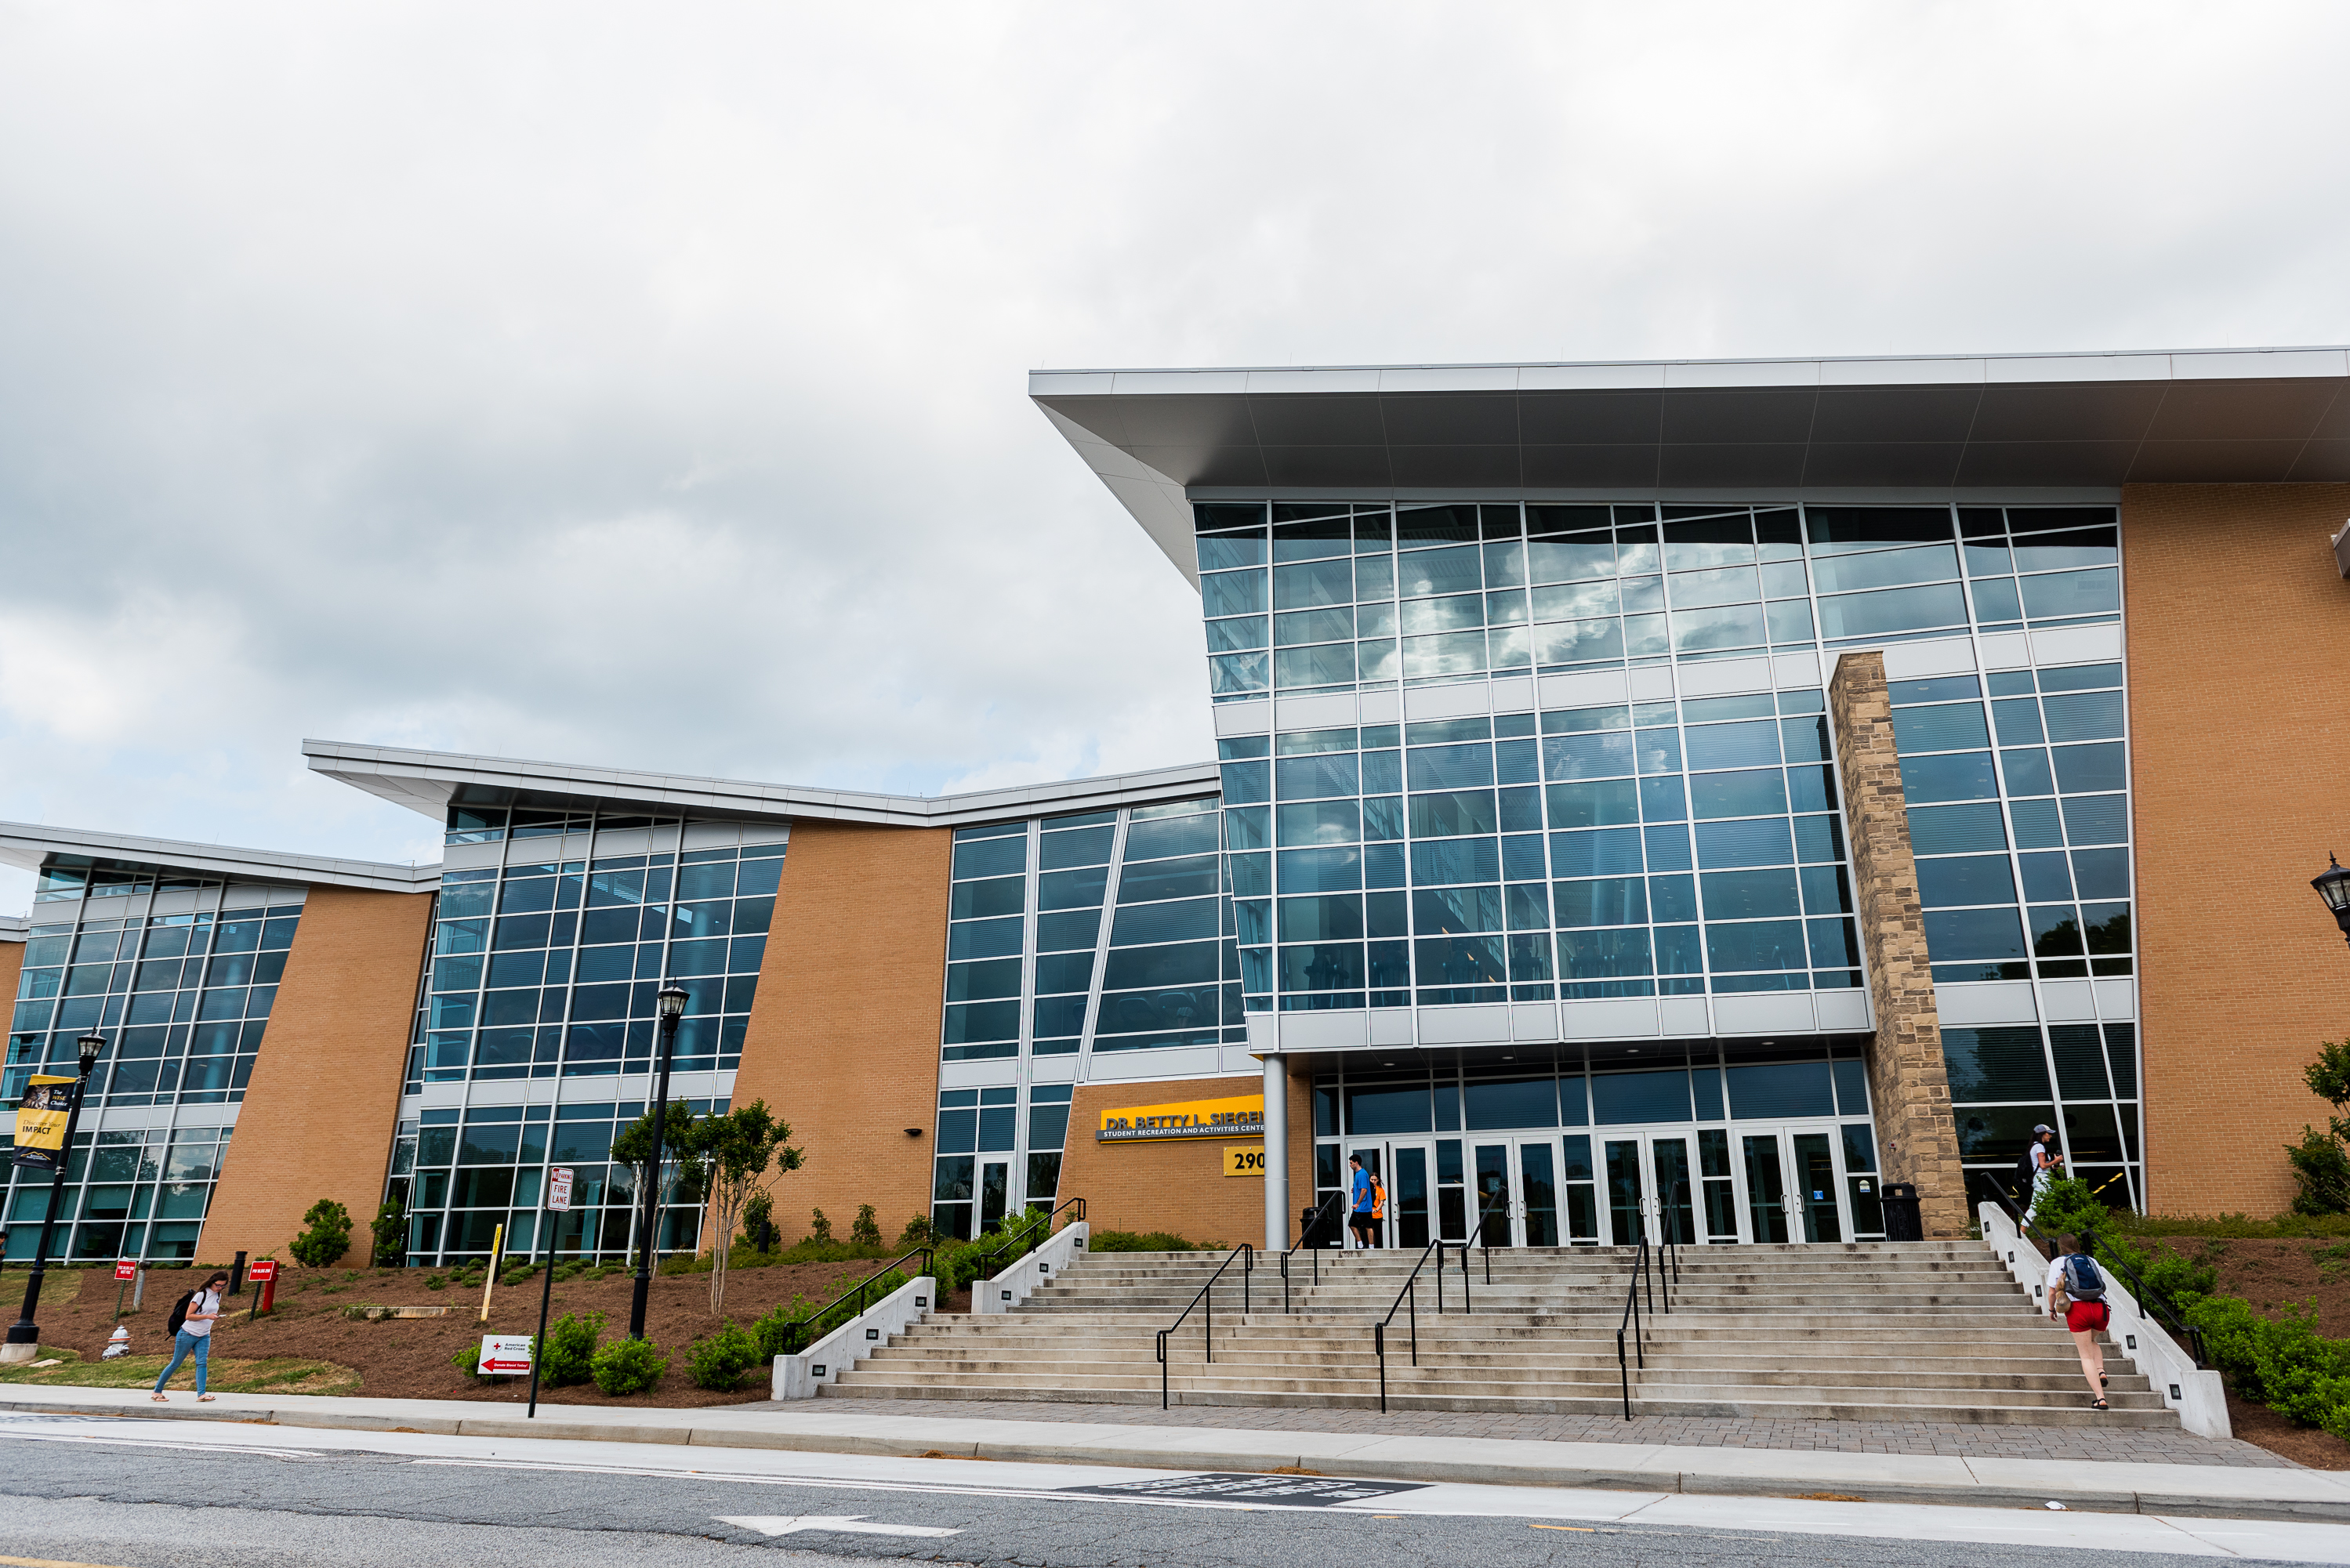 Siegel rec center voted 'Best Place to Work Out' on Kennesaw campus